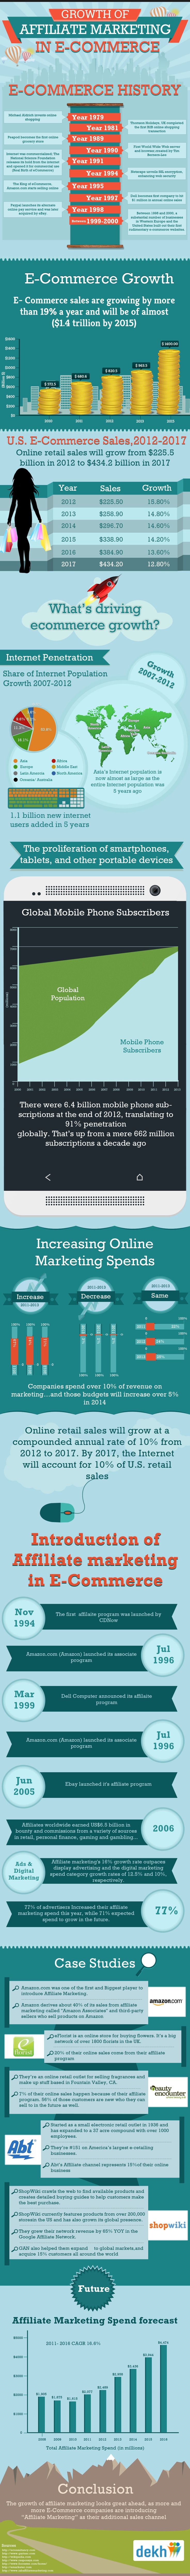 Growth of Affiliate Marketing in E-Commerce [Infographic] | BuildTheResidual.com